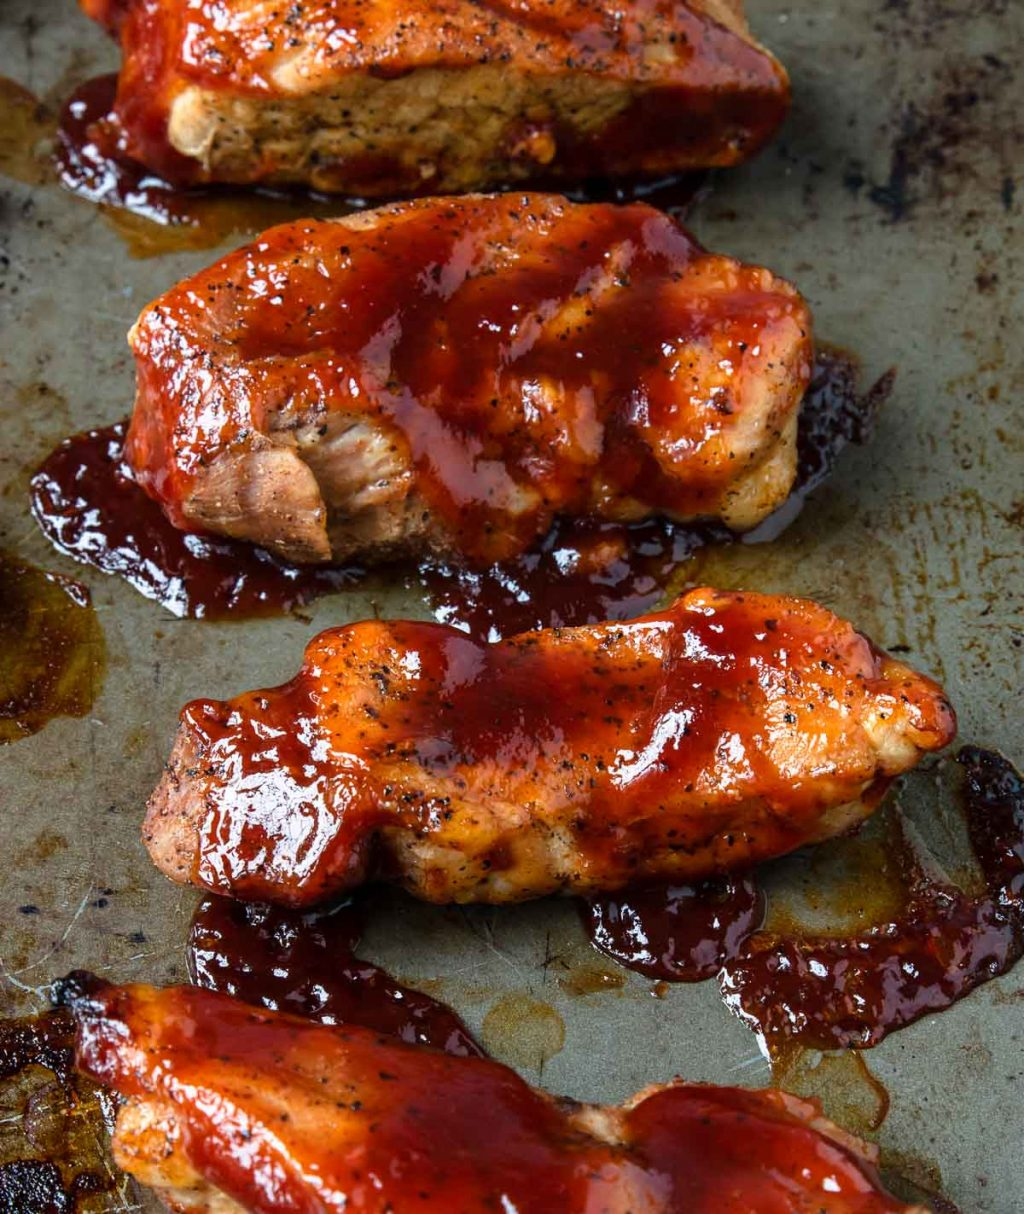 up close photo of boneless pork ribs coated with bbq sauce